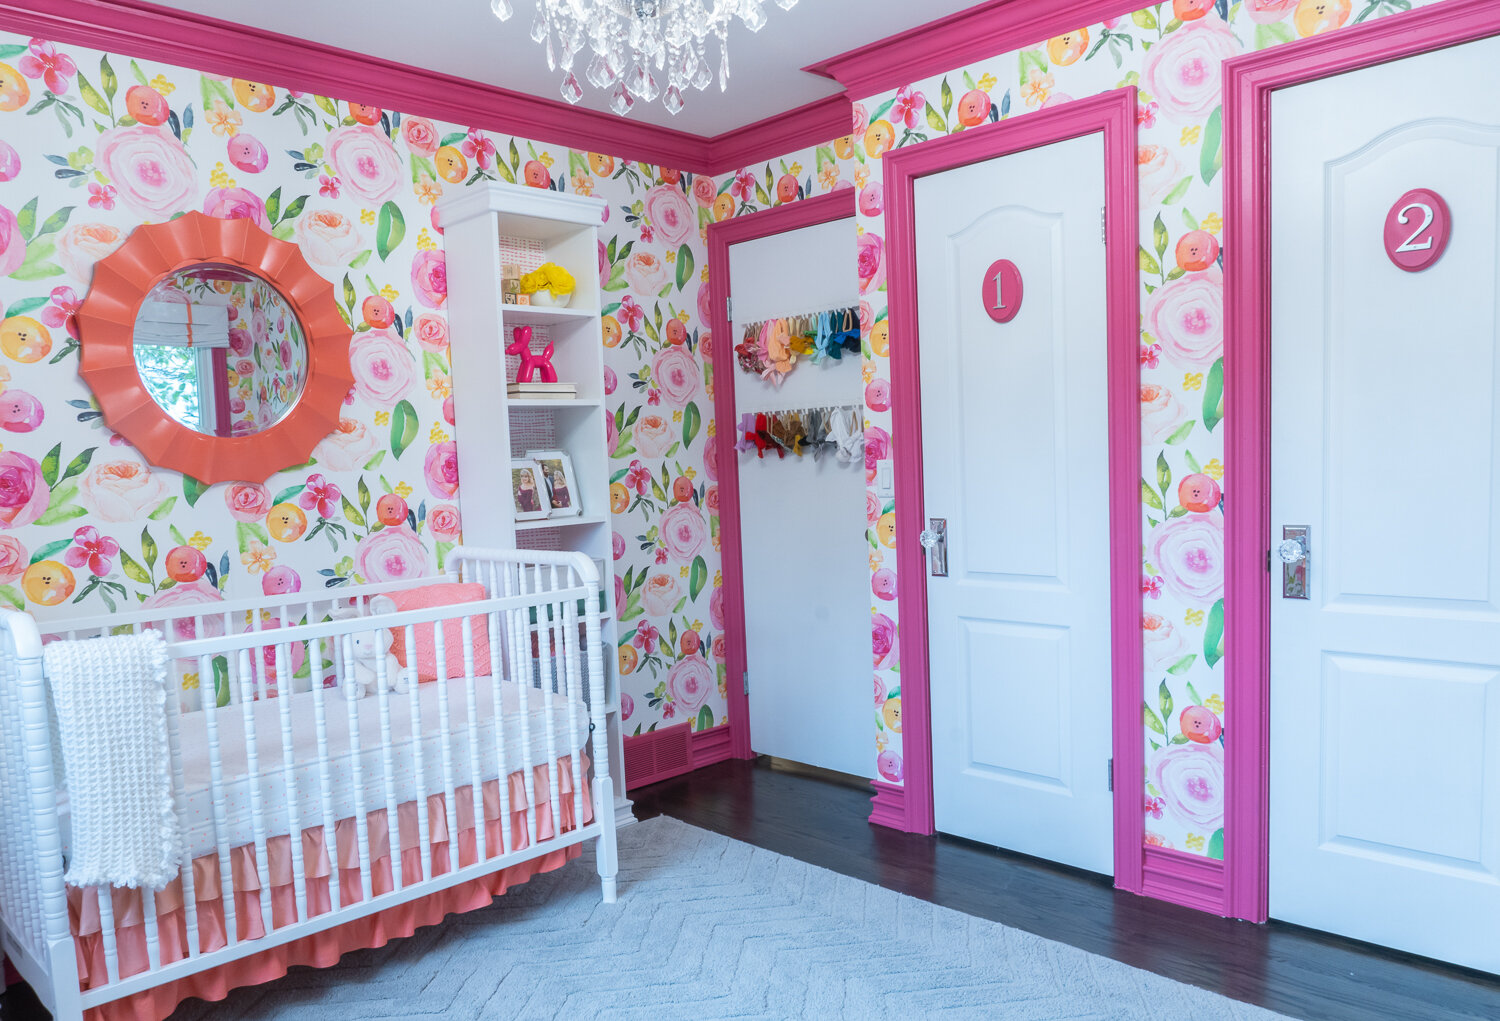 She's not even born yet, and her bow collection on the back of the door has already exceed 50. Oops!